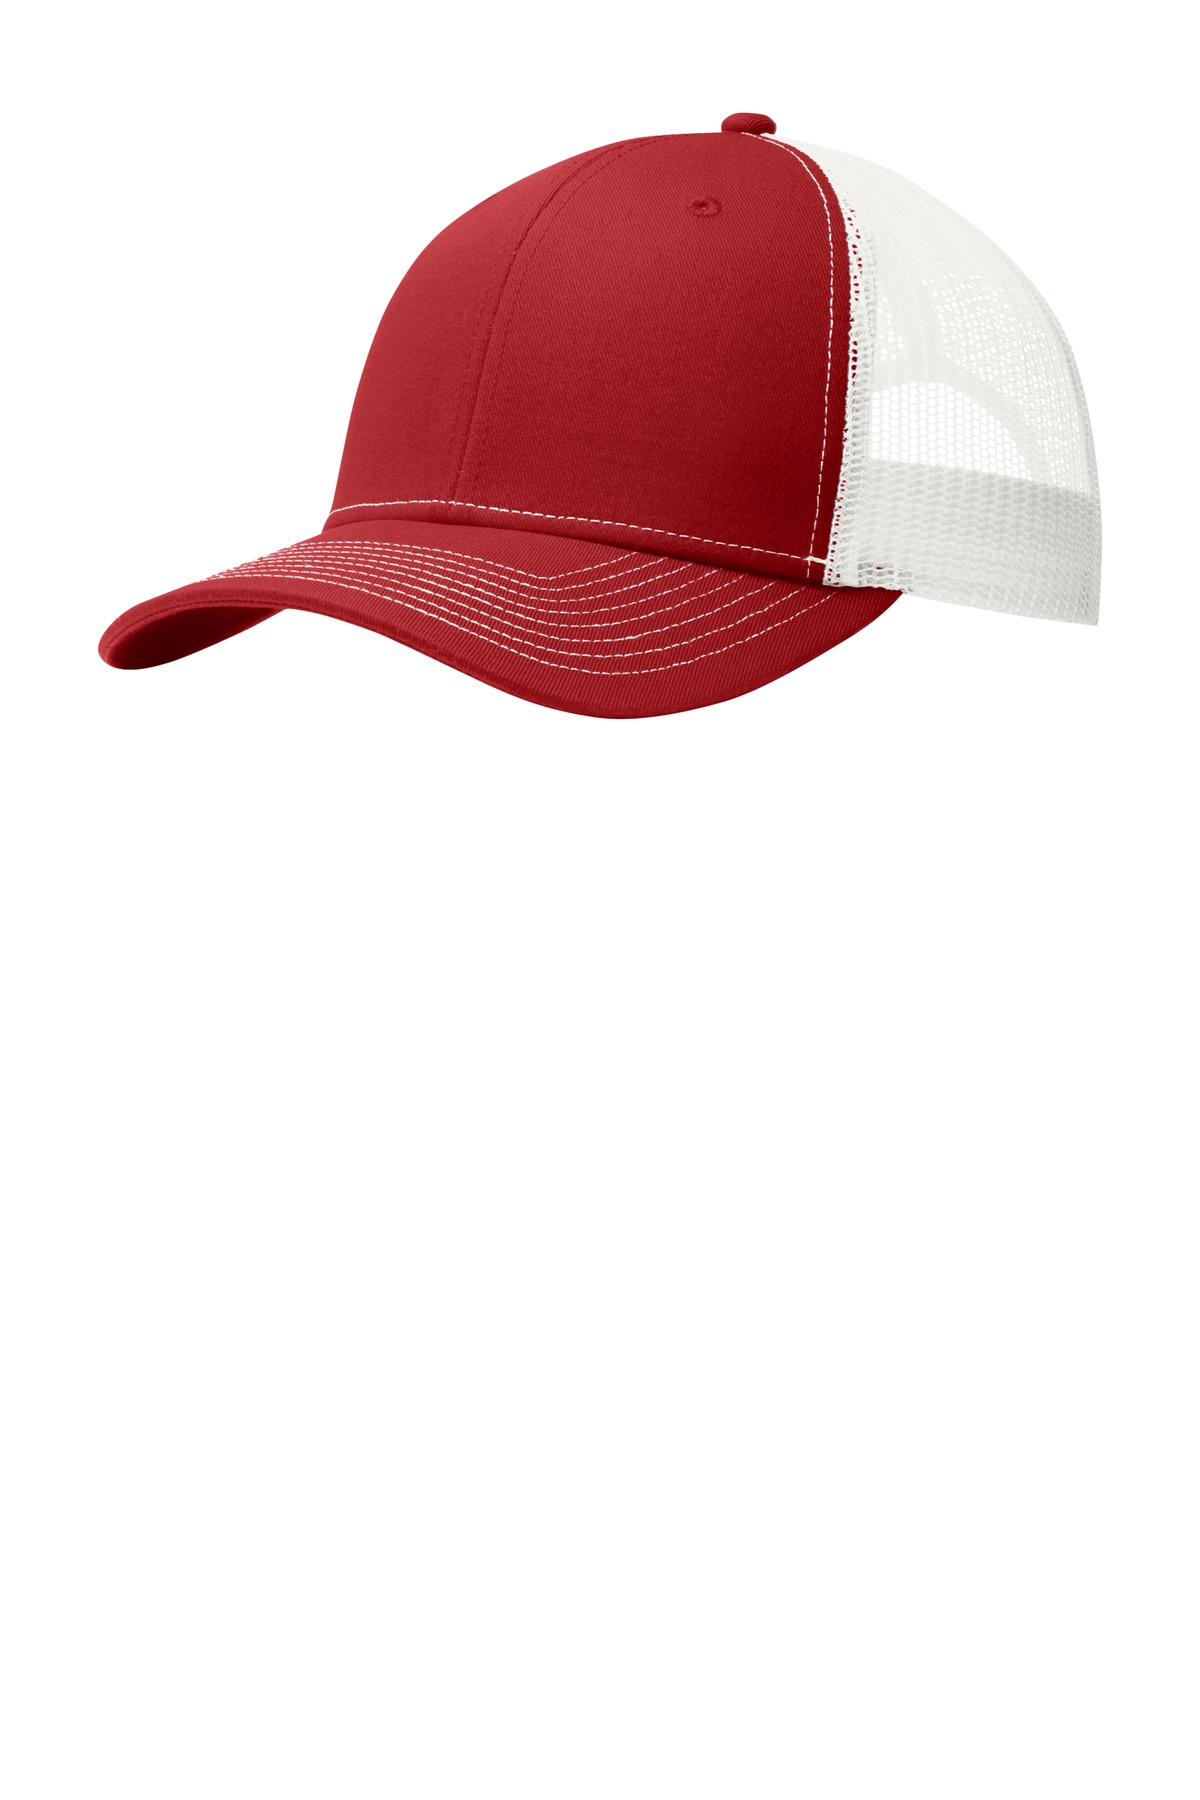 Port Authority ®  Snapback Trucker Cap. C112 - Flame Red/ White